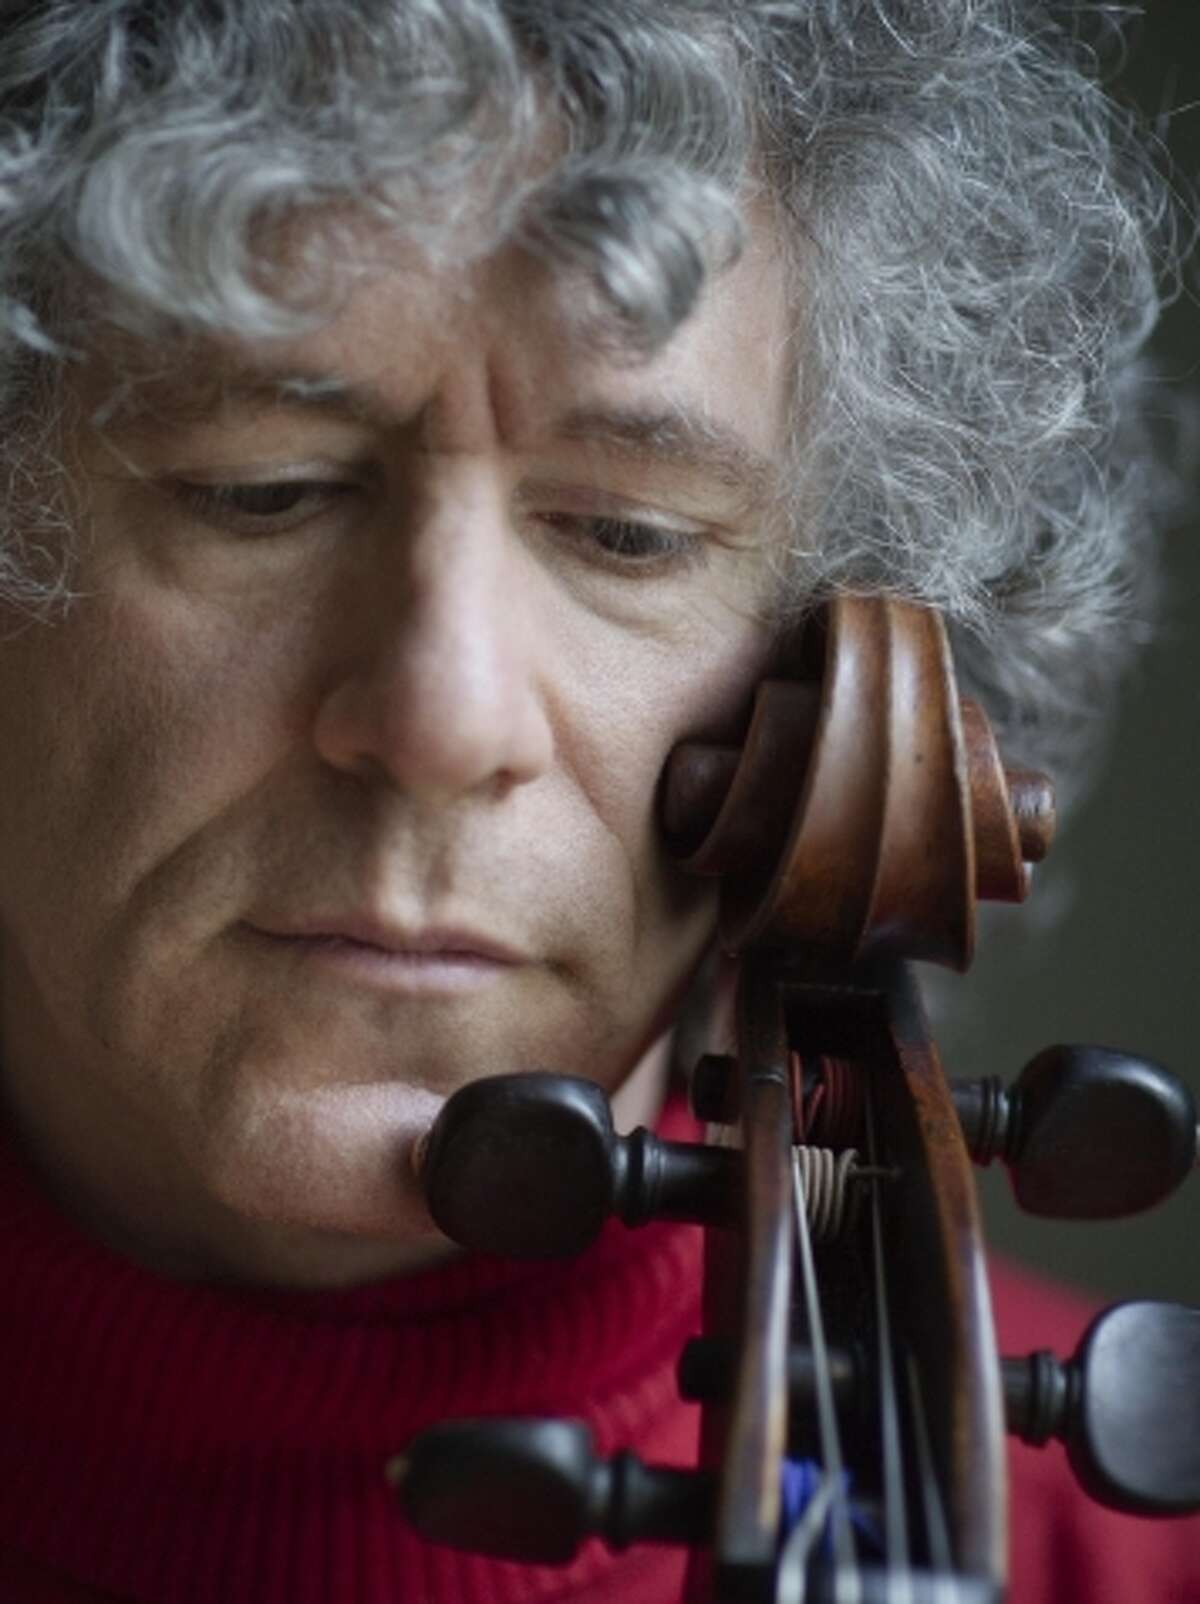 Cellist Steven Isserlis appears this week with the Philharmonia Baroque Orchestra at several venues.